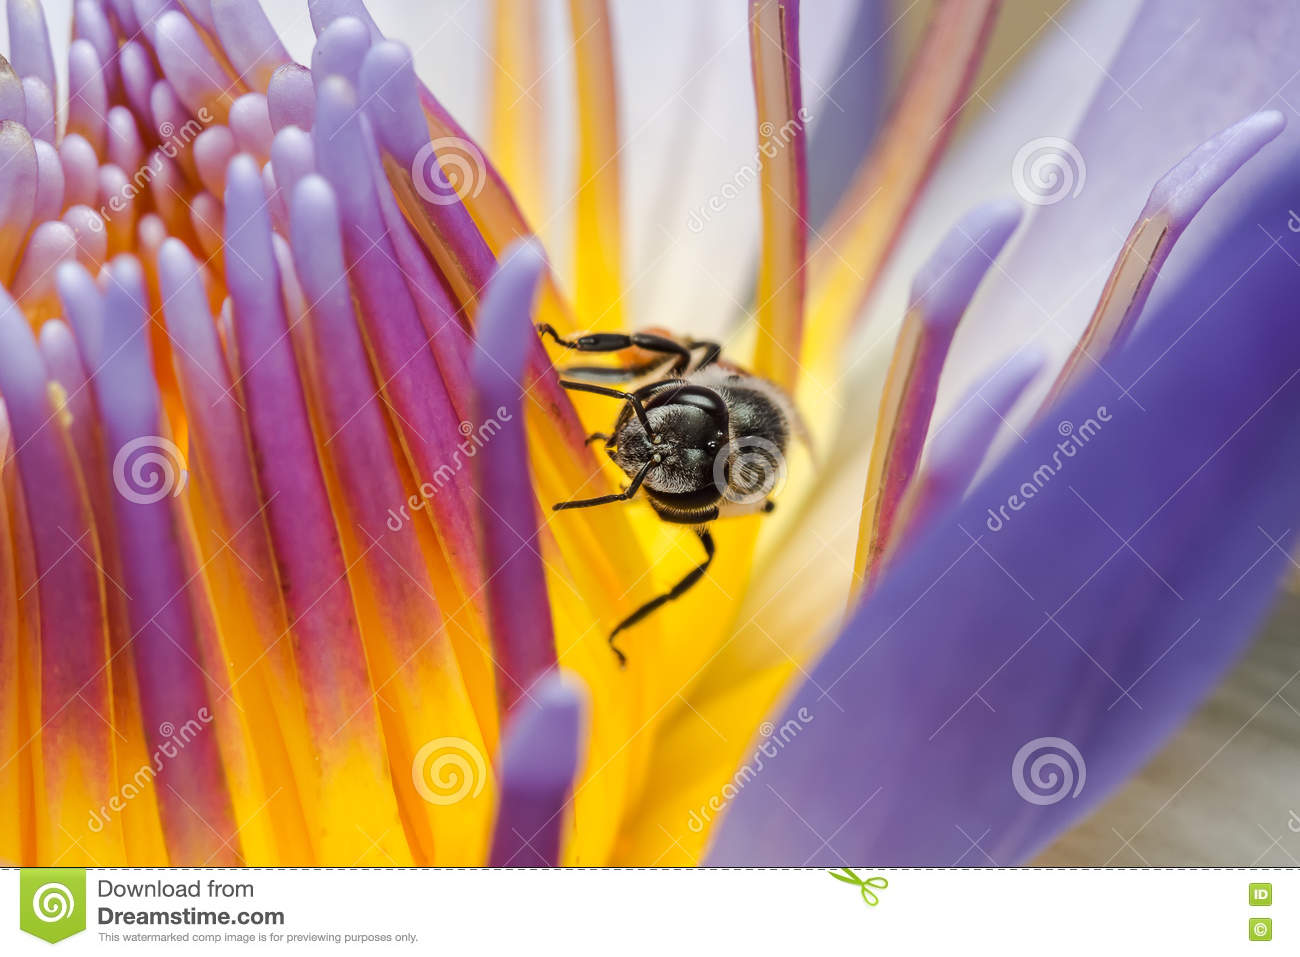 Bee eating syrup in the lotus flower stock image image of water download bee eating syrup in the lotus flower stock image image of water nature mightylinksfo